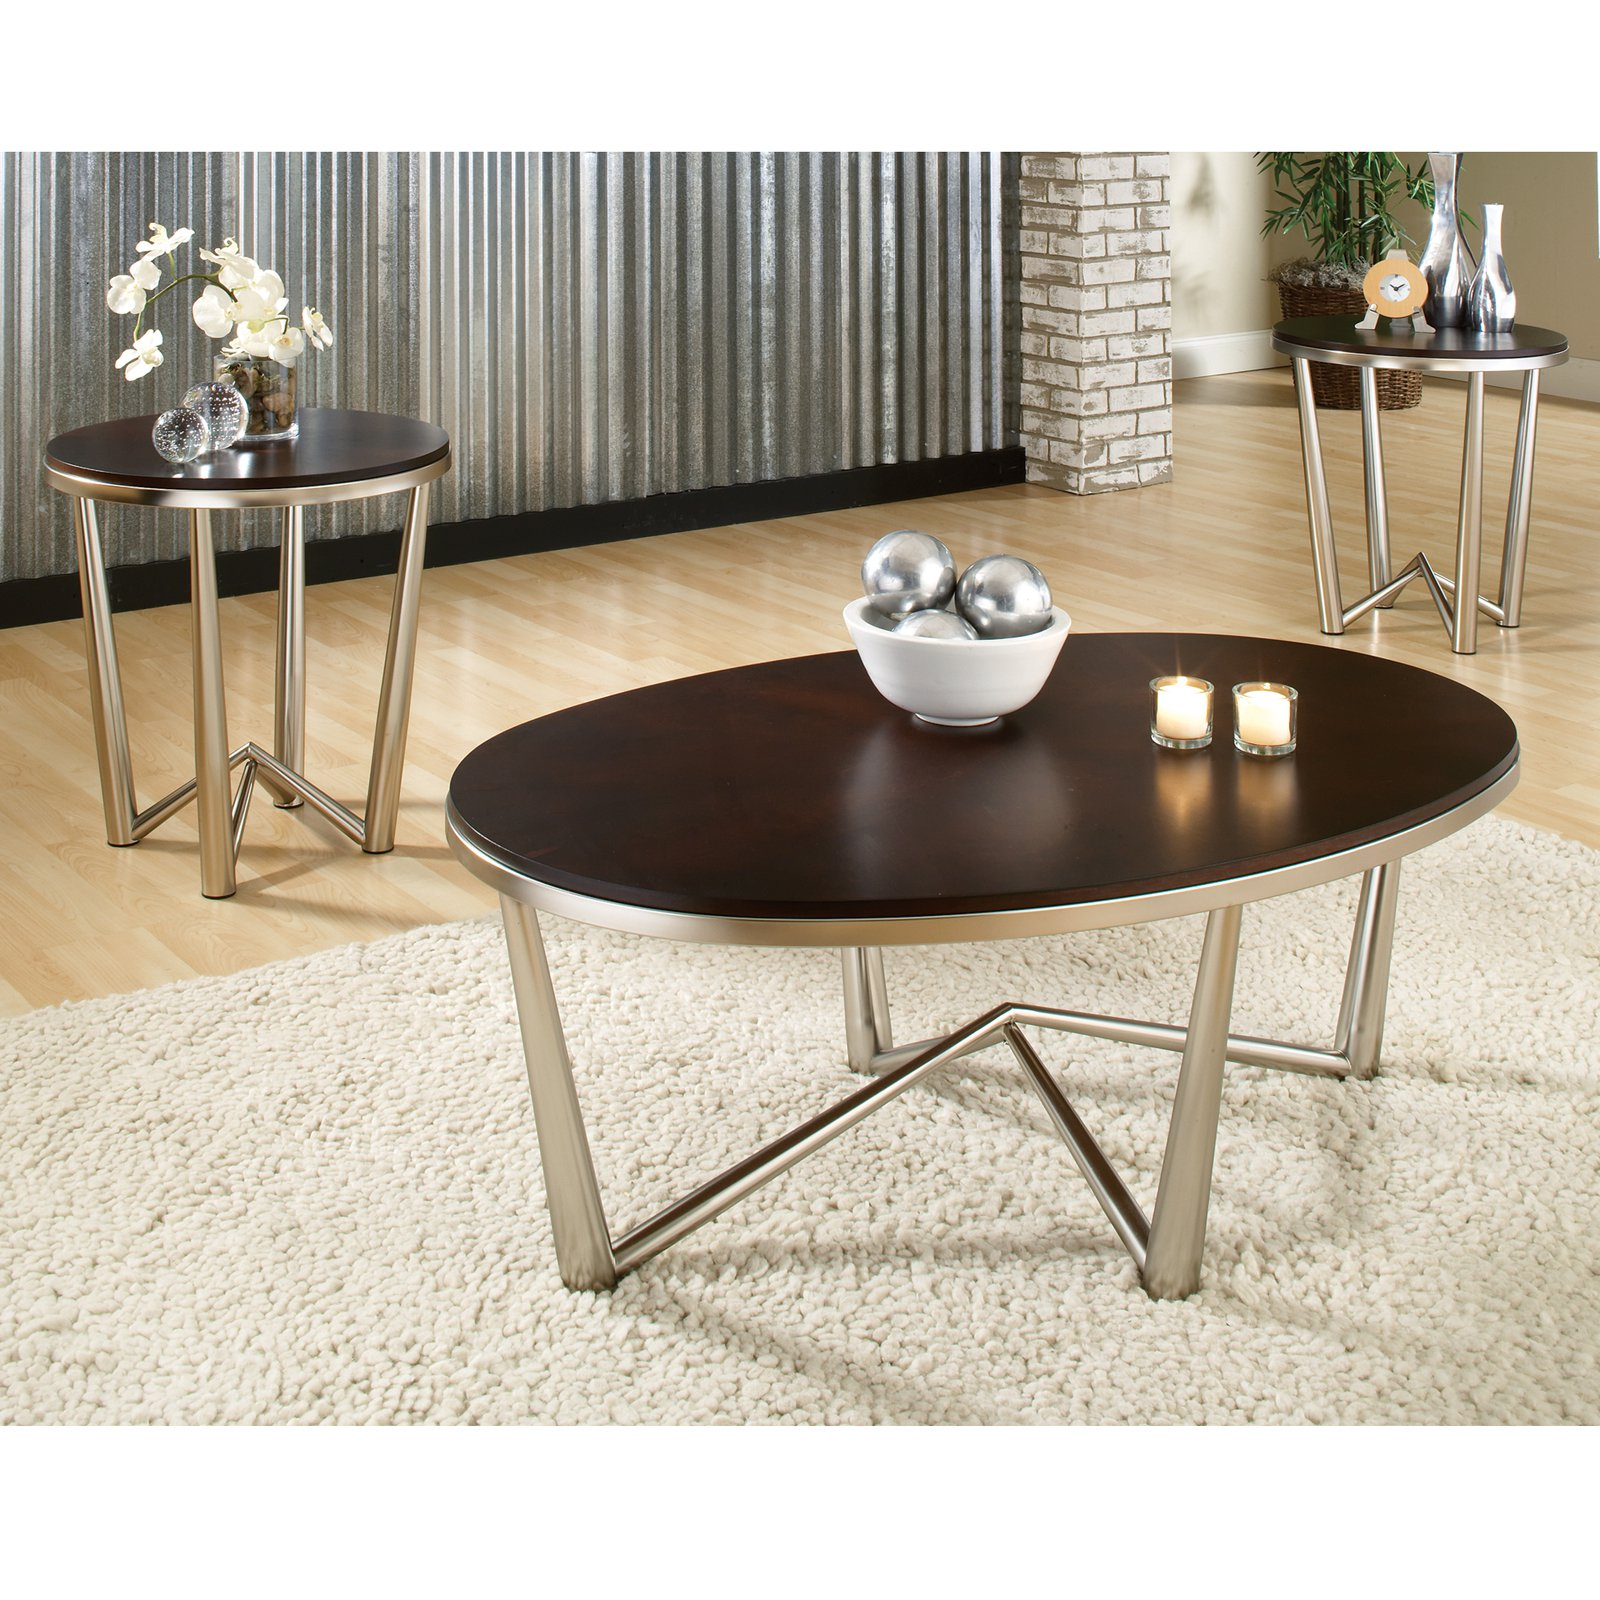 Steve Silver Cosmo Oval Cherry Wood 3 Piece Coffee Table Set